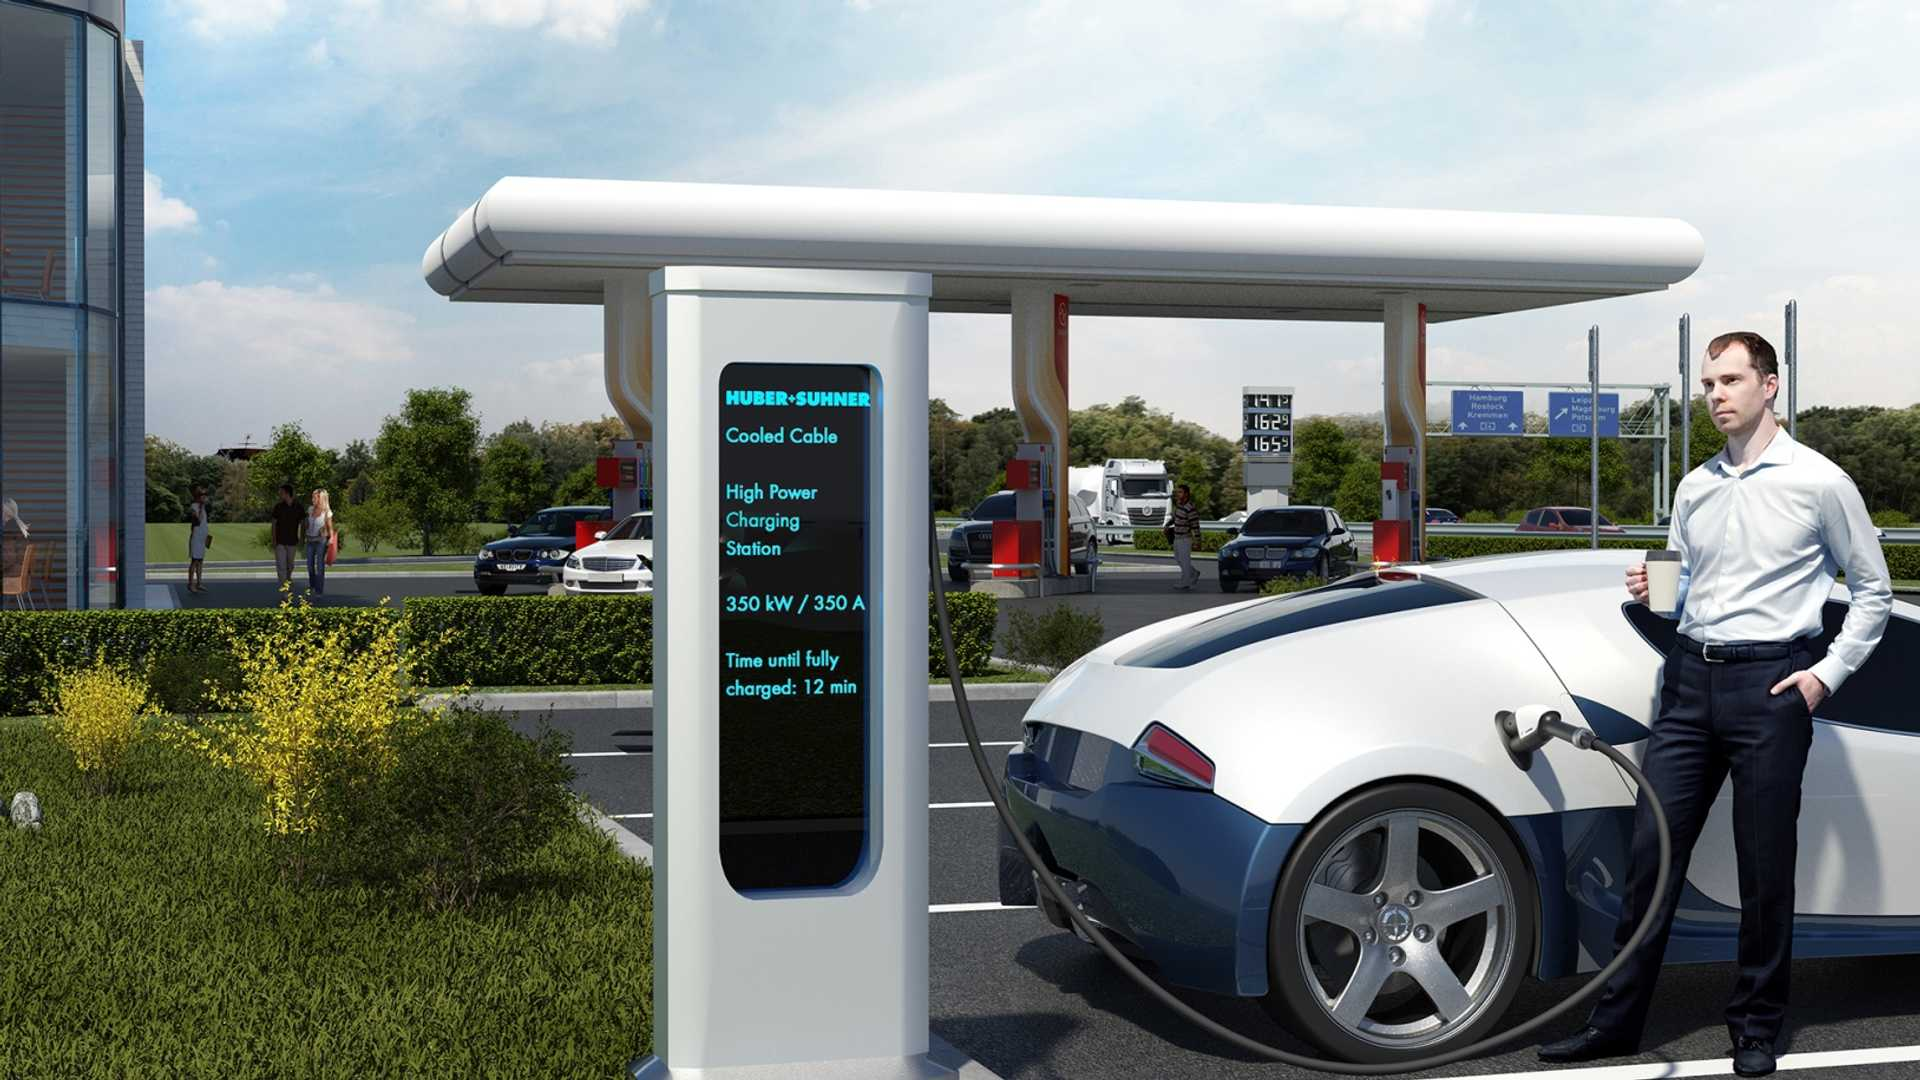 HUBER+SUHNER enables continuous electric vehicle charging at 500 A